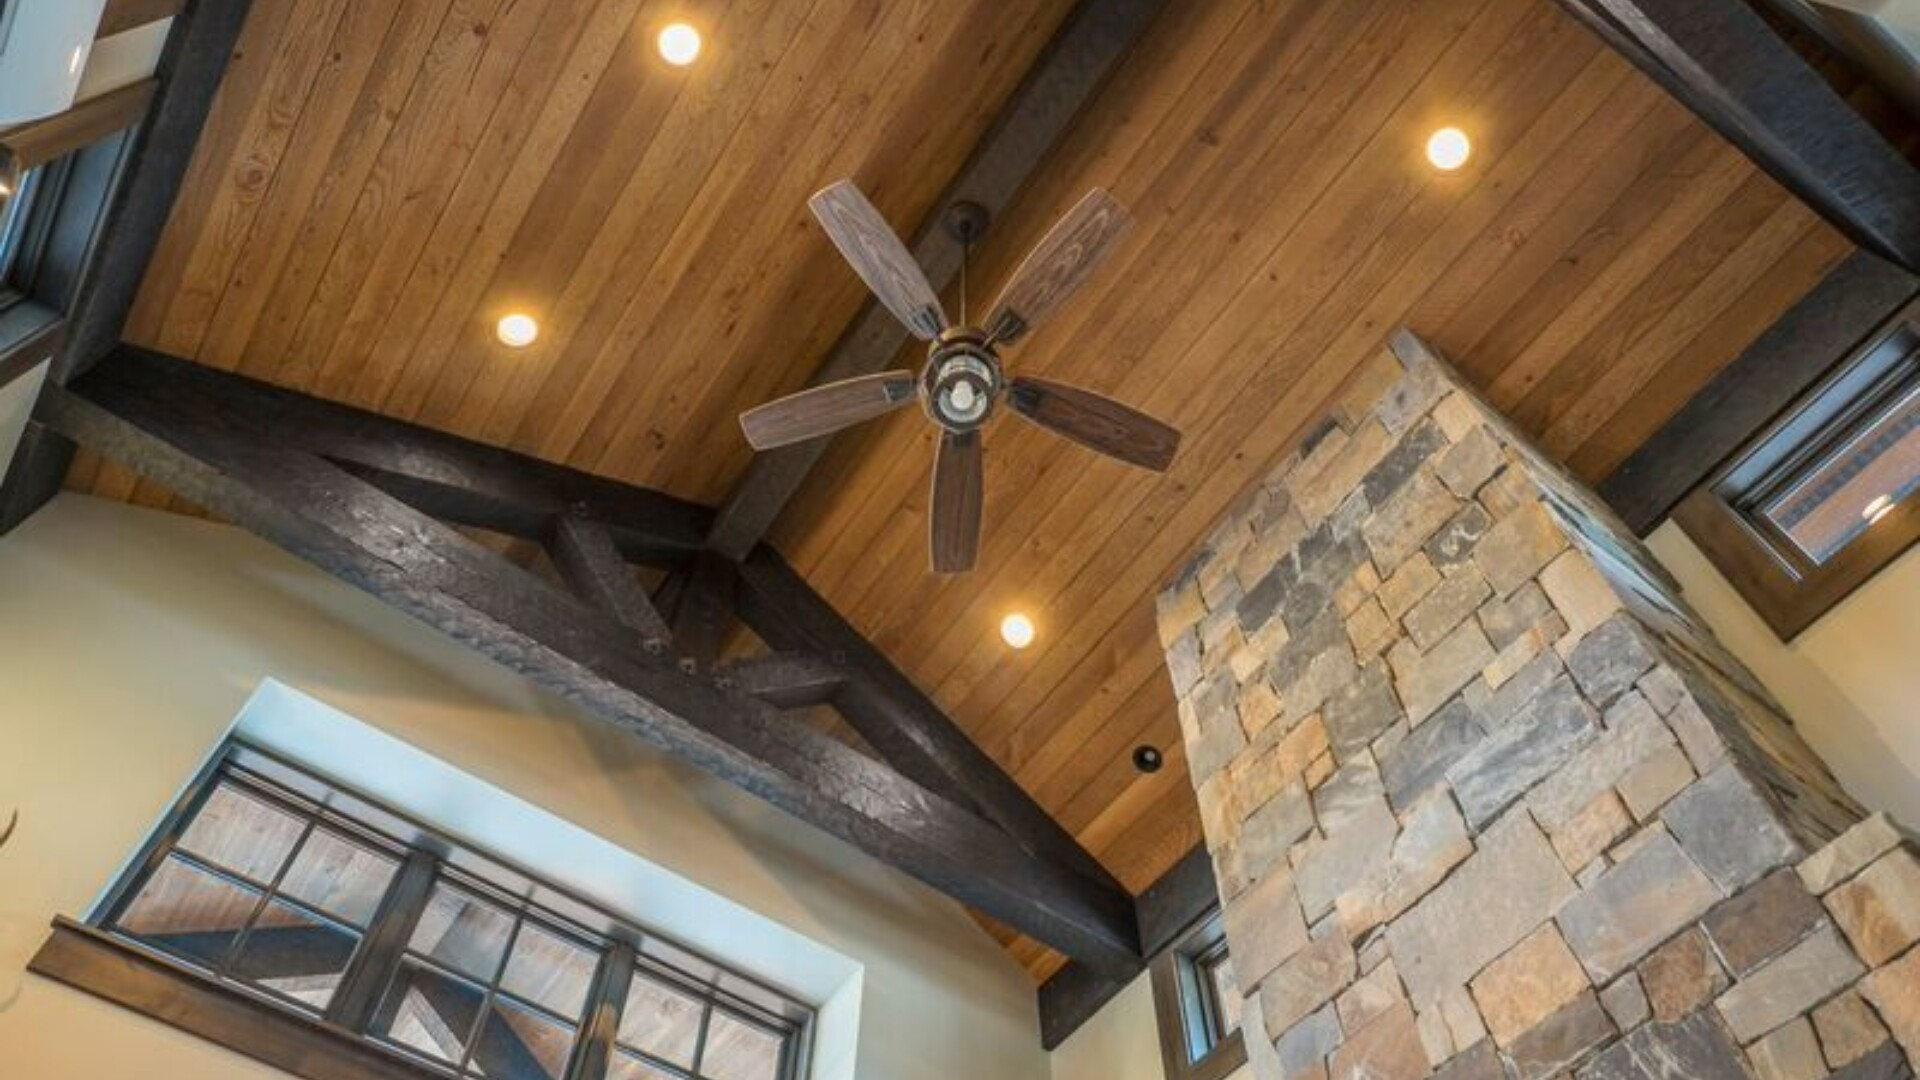 wooden ceiling with heavy wooden trusses and a ceiling fan